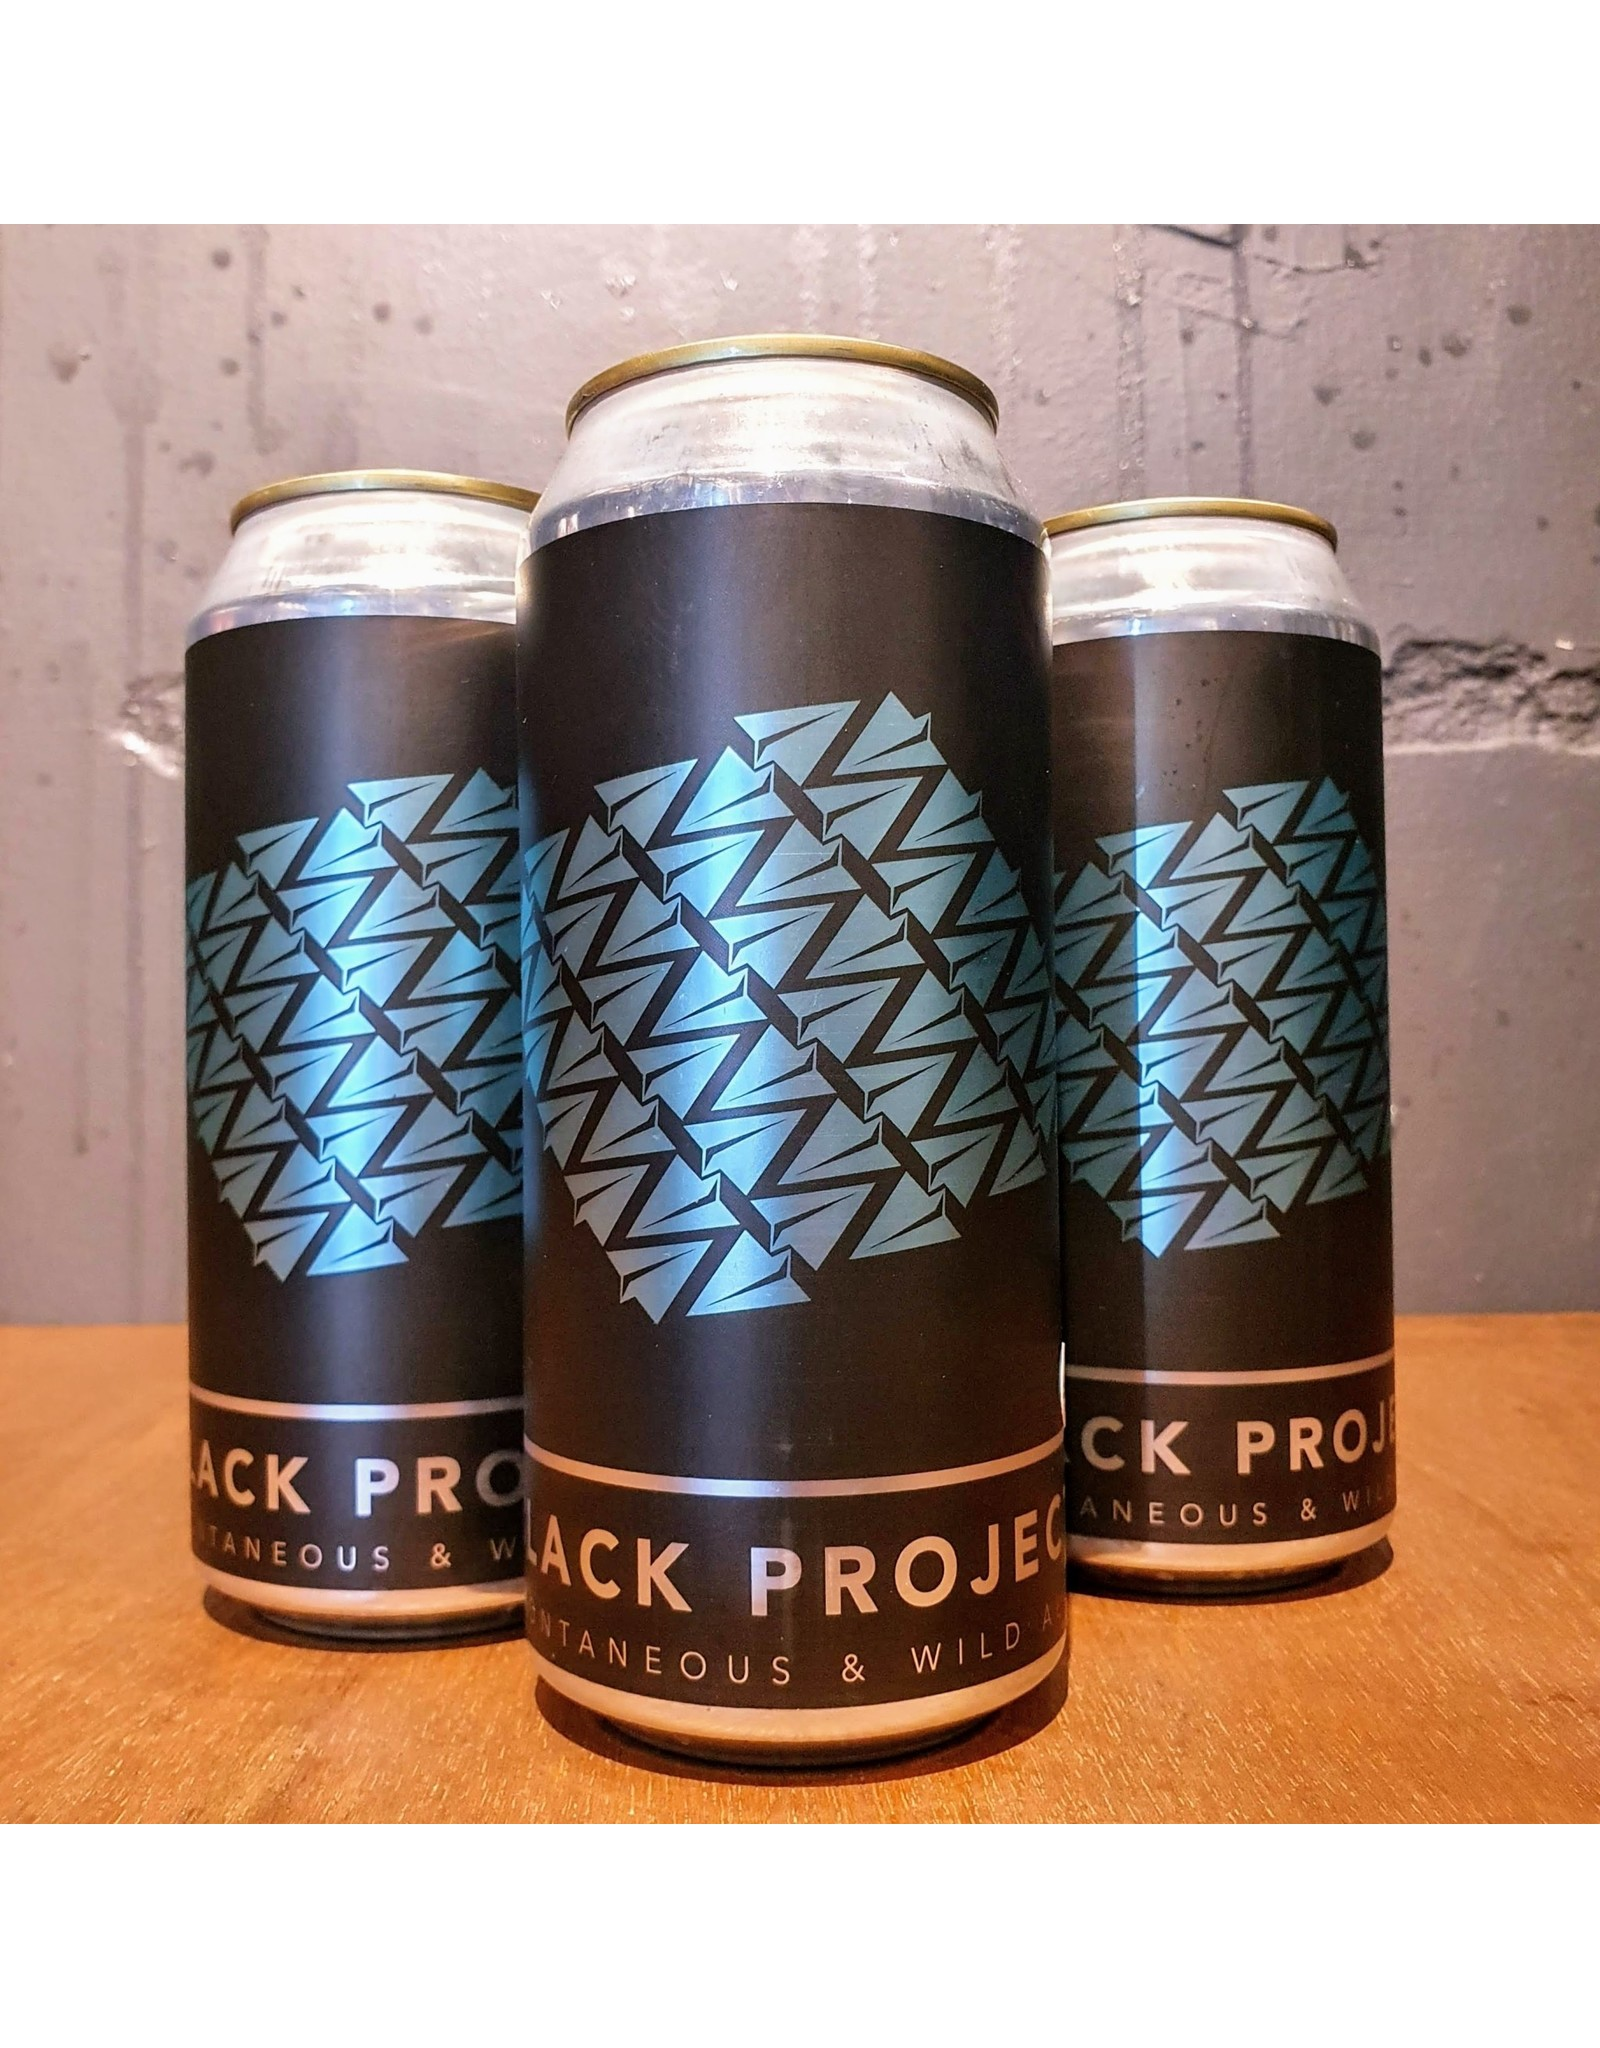 Black Project Spontaneous and Wild Ales Black Project Spontaneous and Wild Ales: Camber 2020